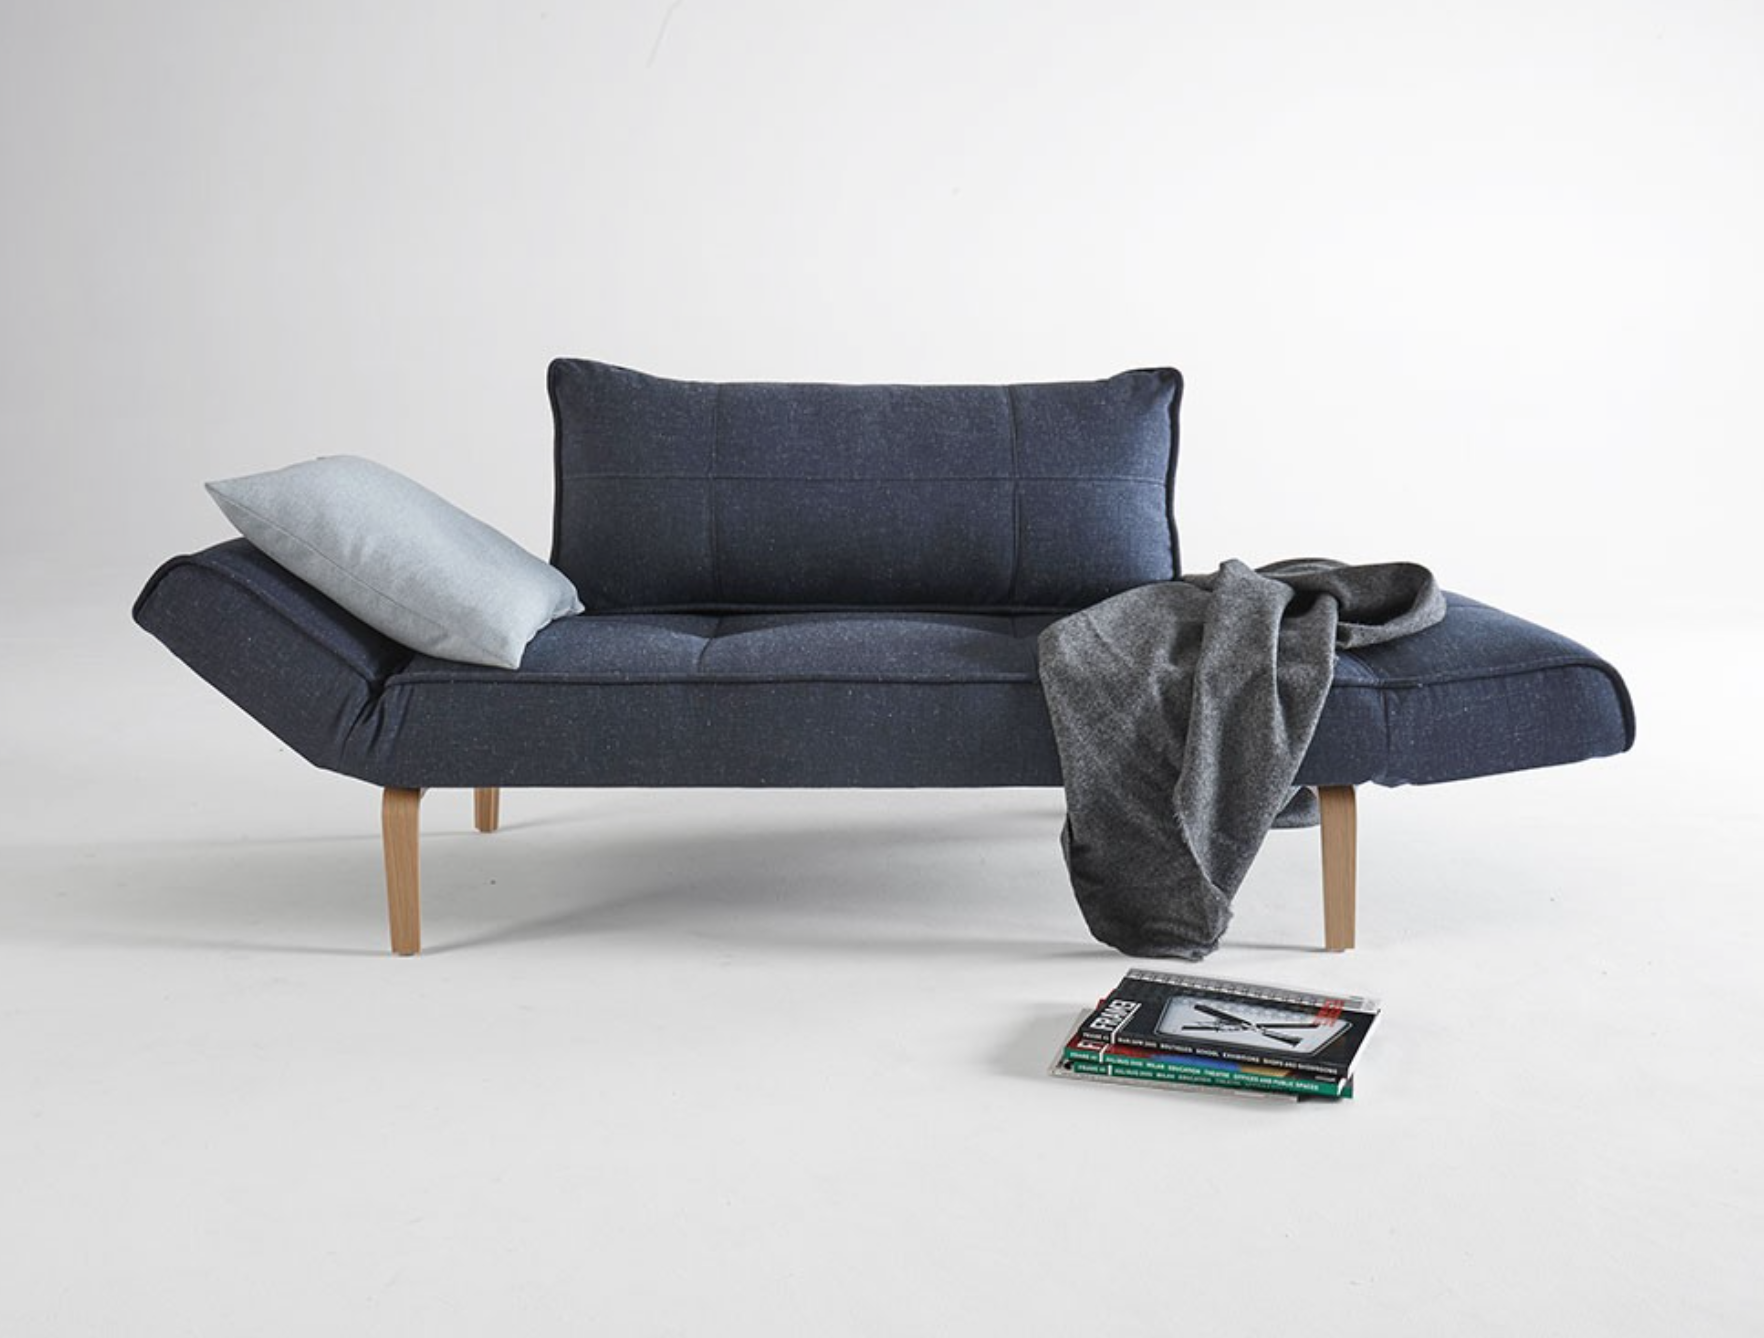 Zeal Sofa Bed Zeal Deluxe Modern Sofa Bed Nova Interiors